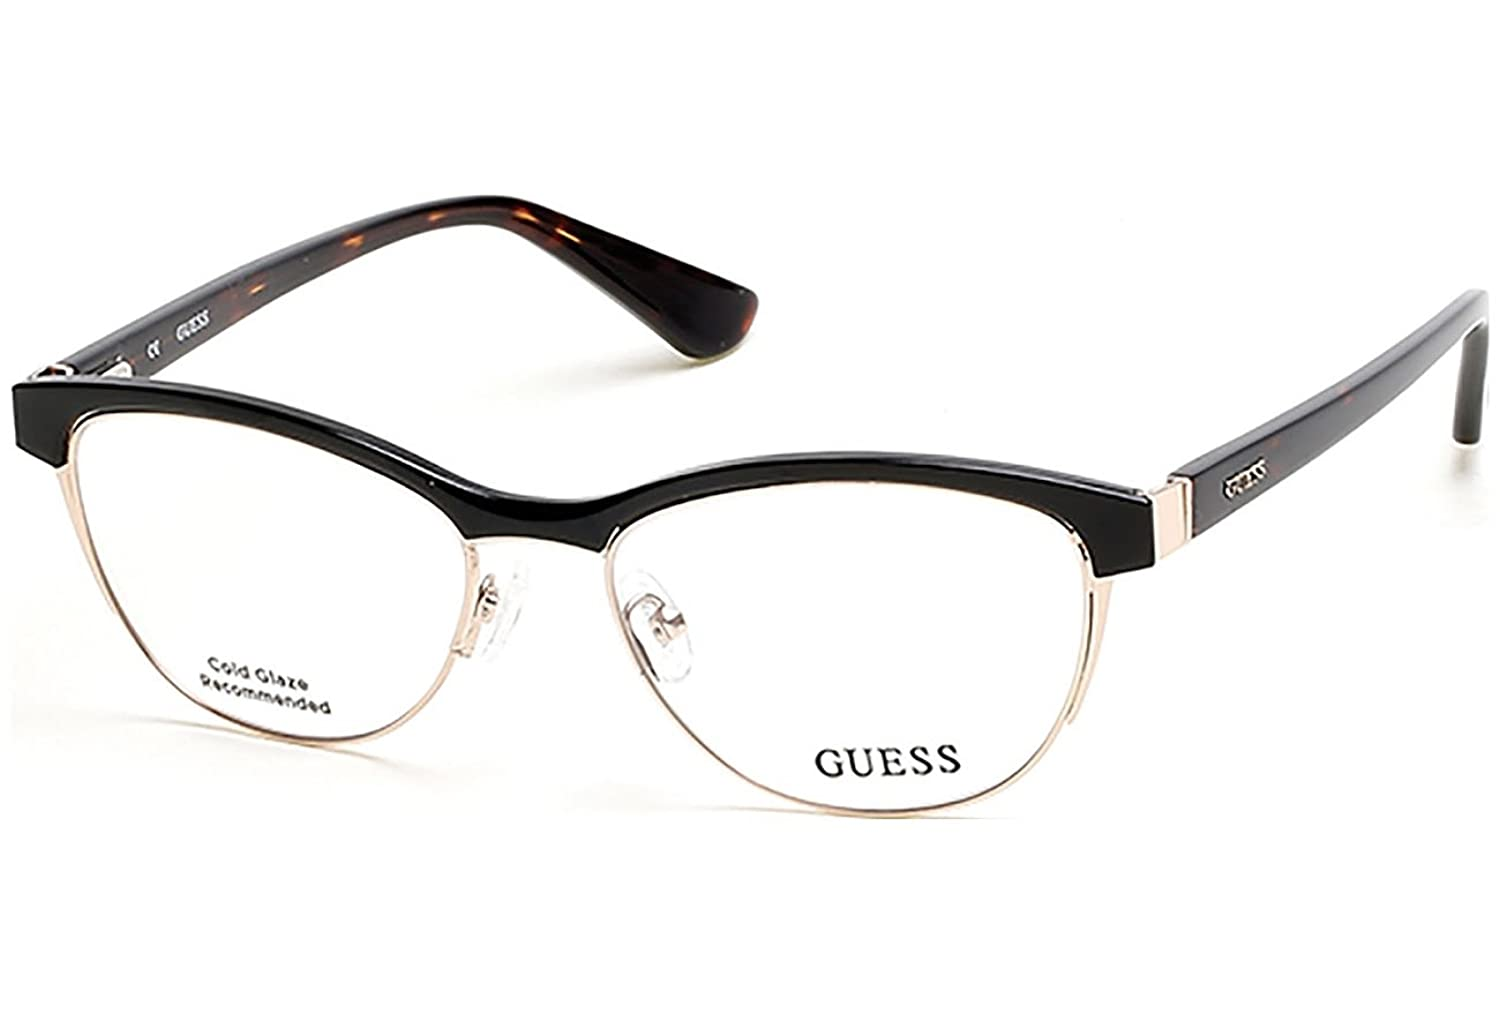 Luxury Guess Eyeglasses Frames Ornament - Picture Frame Ideas ...